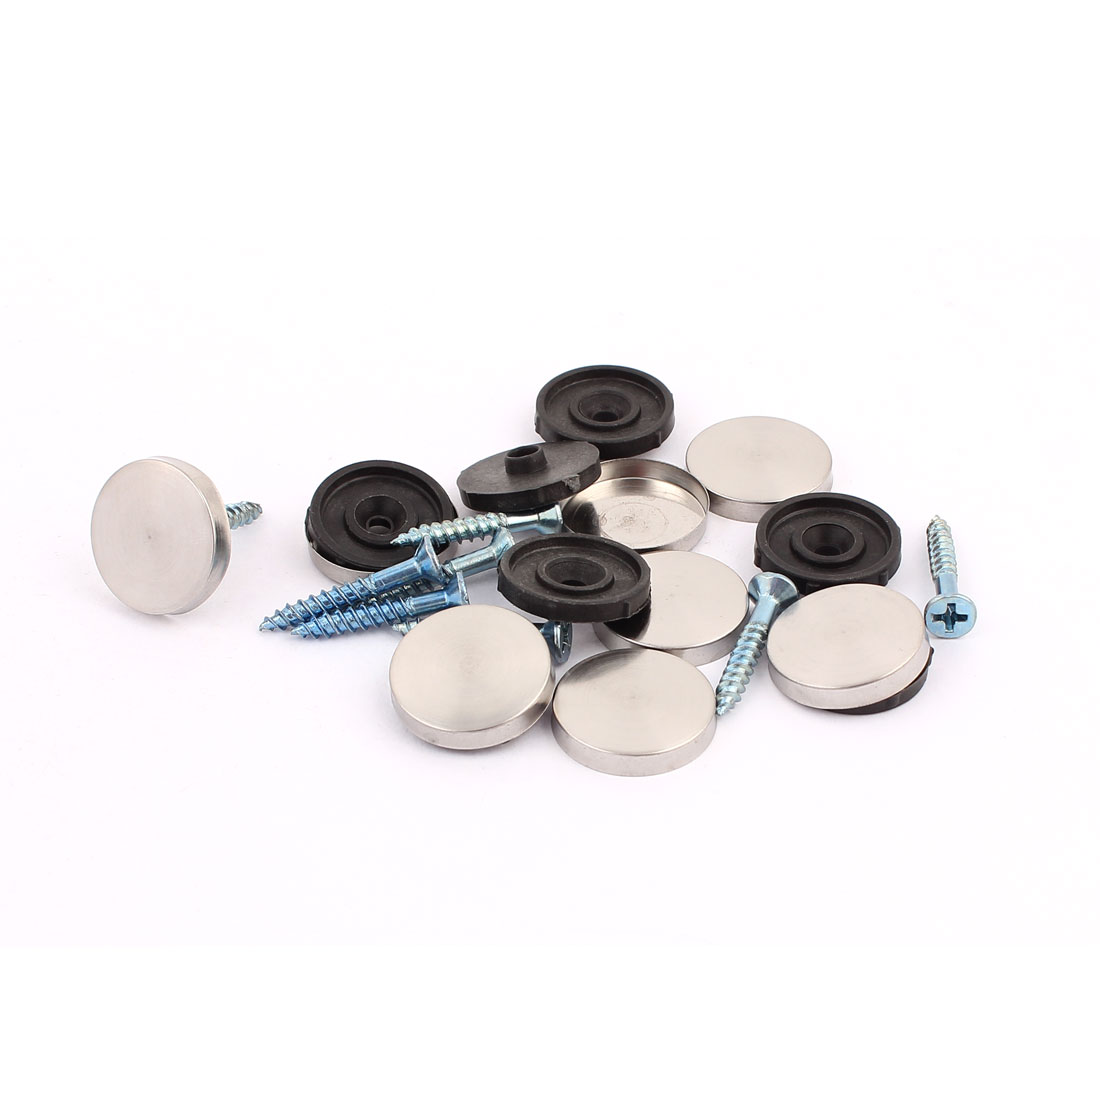 8 Pcs Anti-rust Fixed Mirror Nail Pad Decorative Fasteners Billboard Studded 20mm Diameter